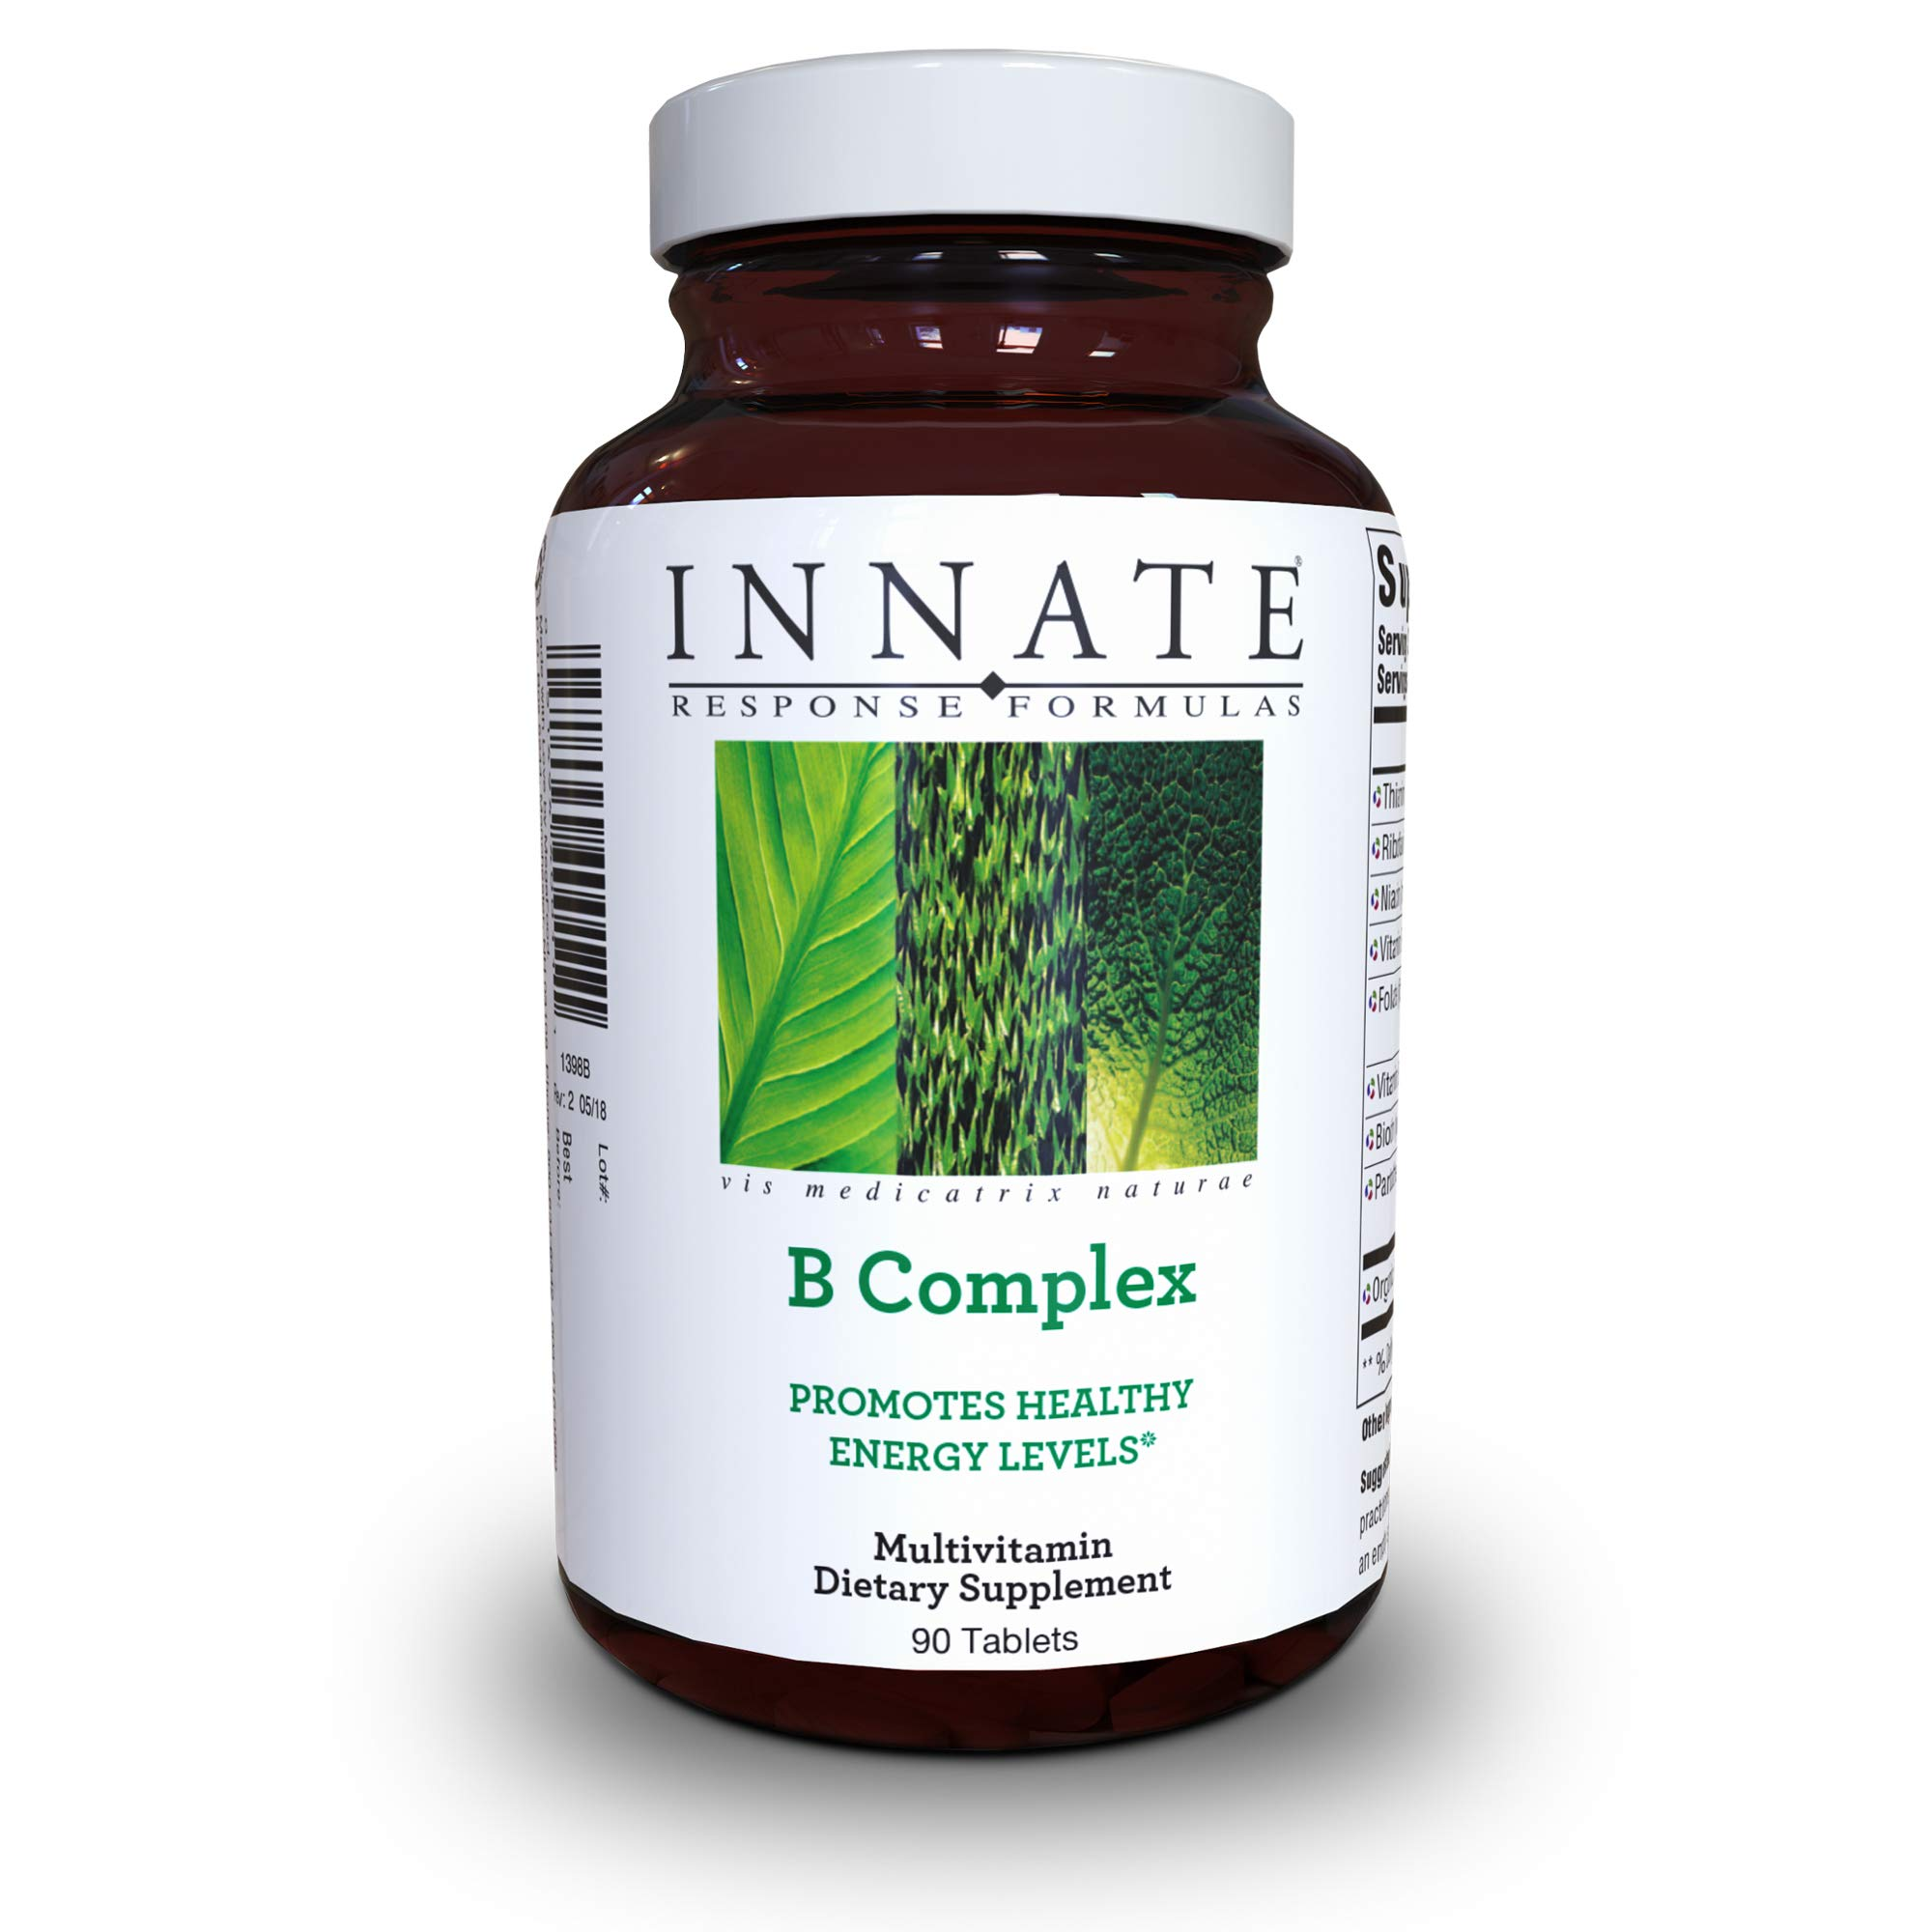 INNATE Response Formulas - B Complex, Promotes Energy and Health of the Nervous System, 90 Tablets by INNATE Response Formulas